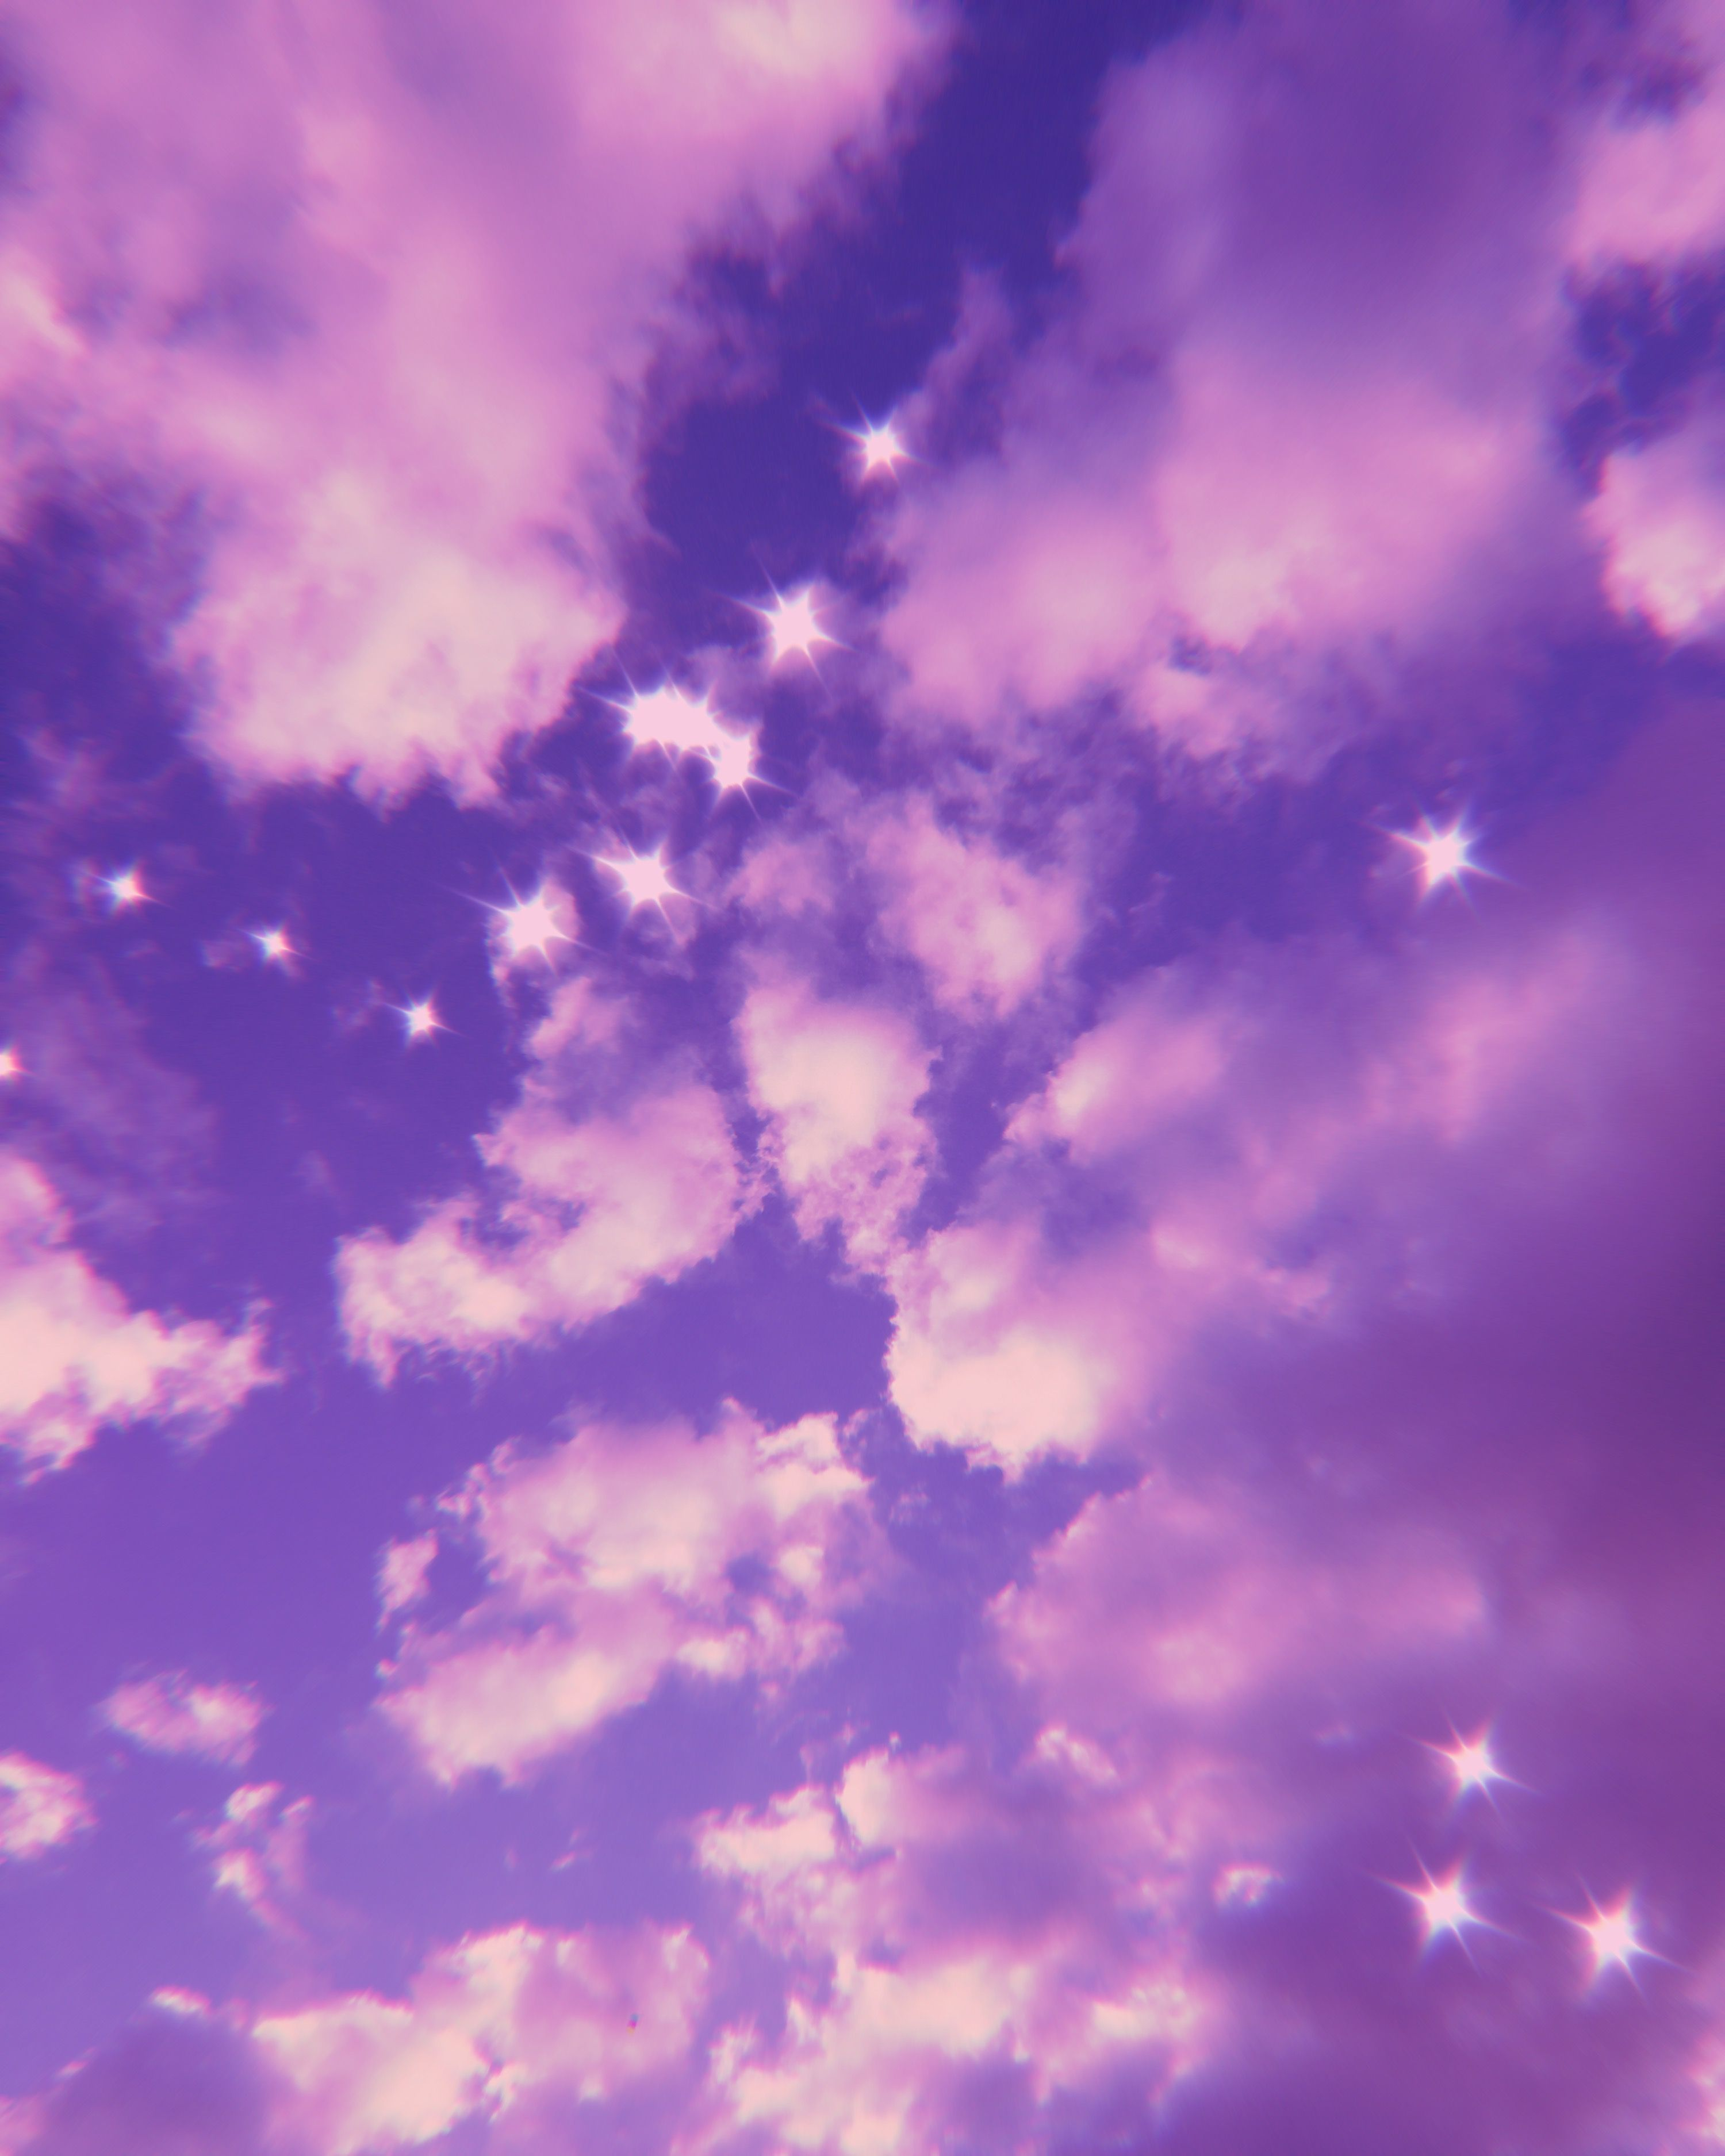 Intense colors, sharp lines, glossy finish. Pink bling sky ☆ in 2020 | Purple aesthetic, Aesthetic ...